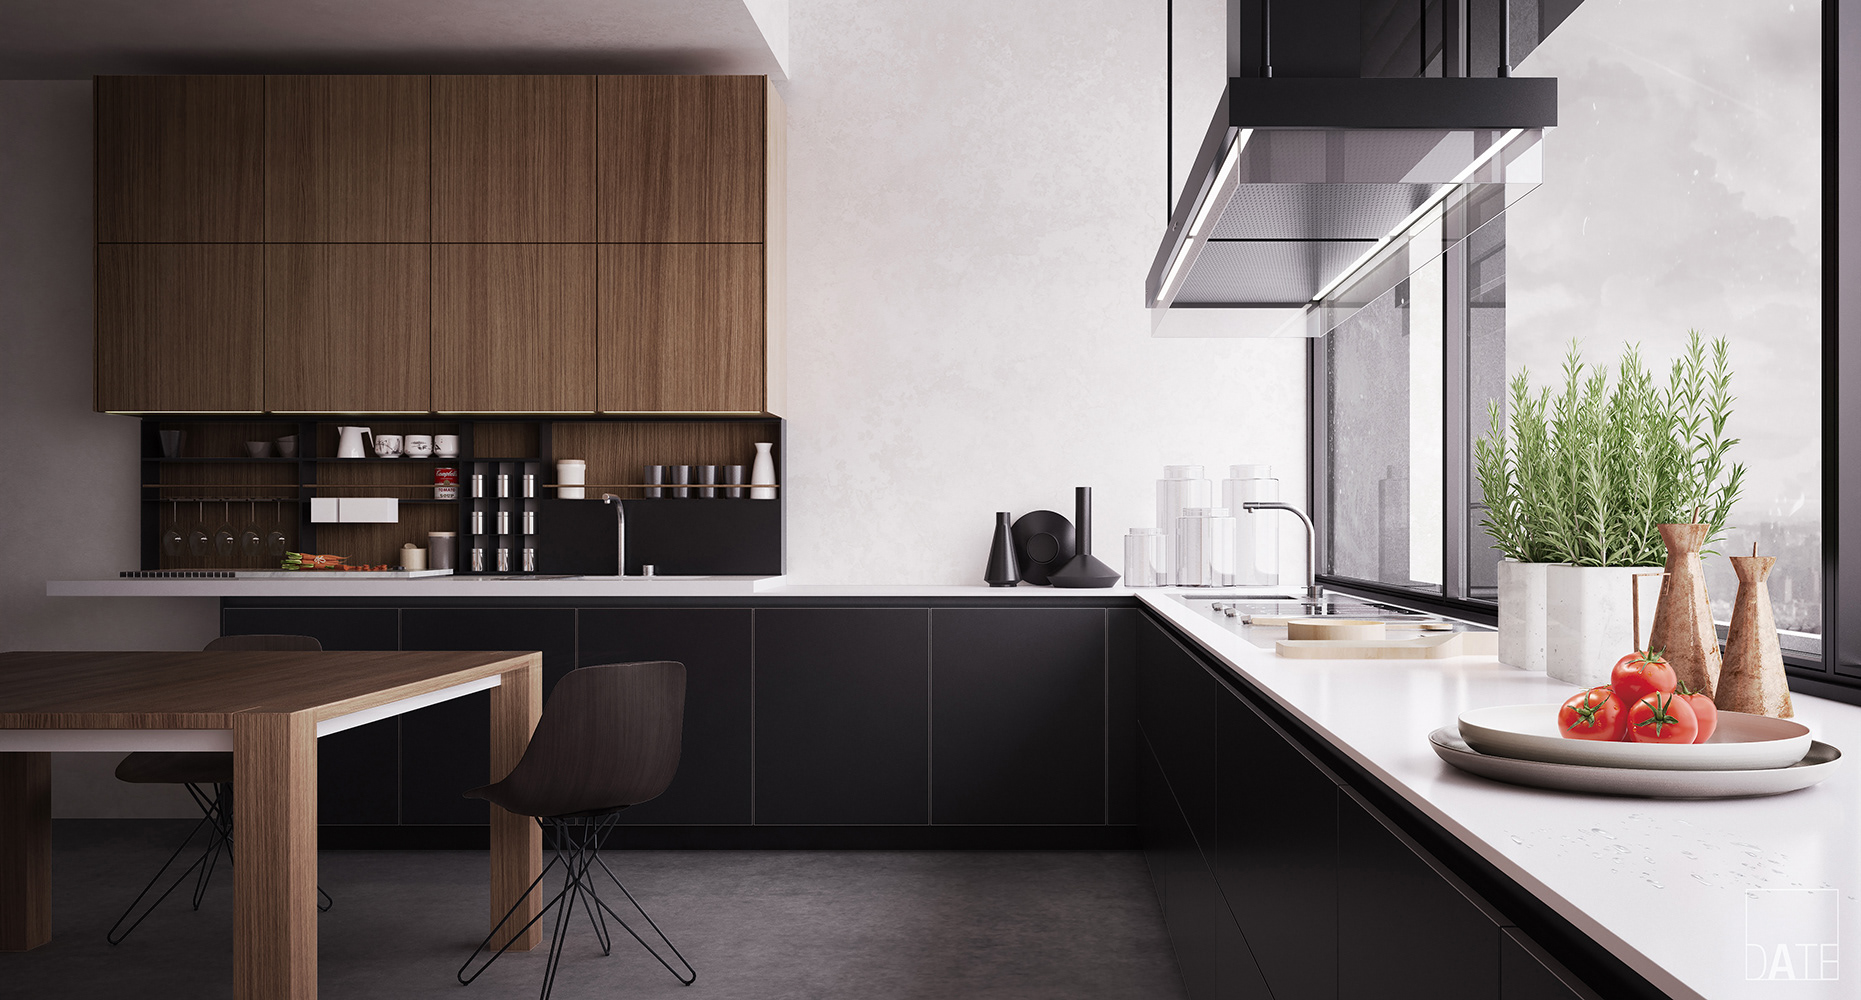 Poliform Kitchen Design.  kitchen design by Poliform Varenna black mat base units and tall wall without handles in elm Done SketchUp conjunction with V Ray Chaos DATE 3D Architectural Visualization Twelve